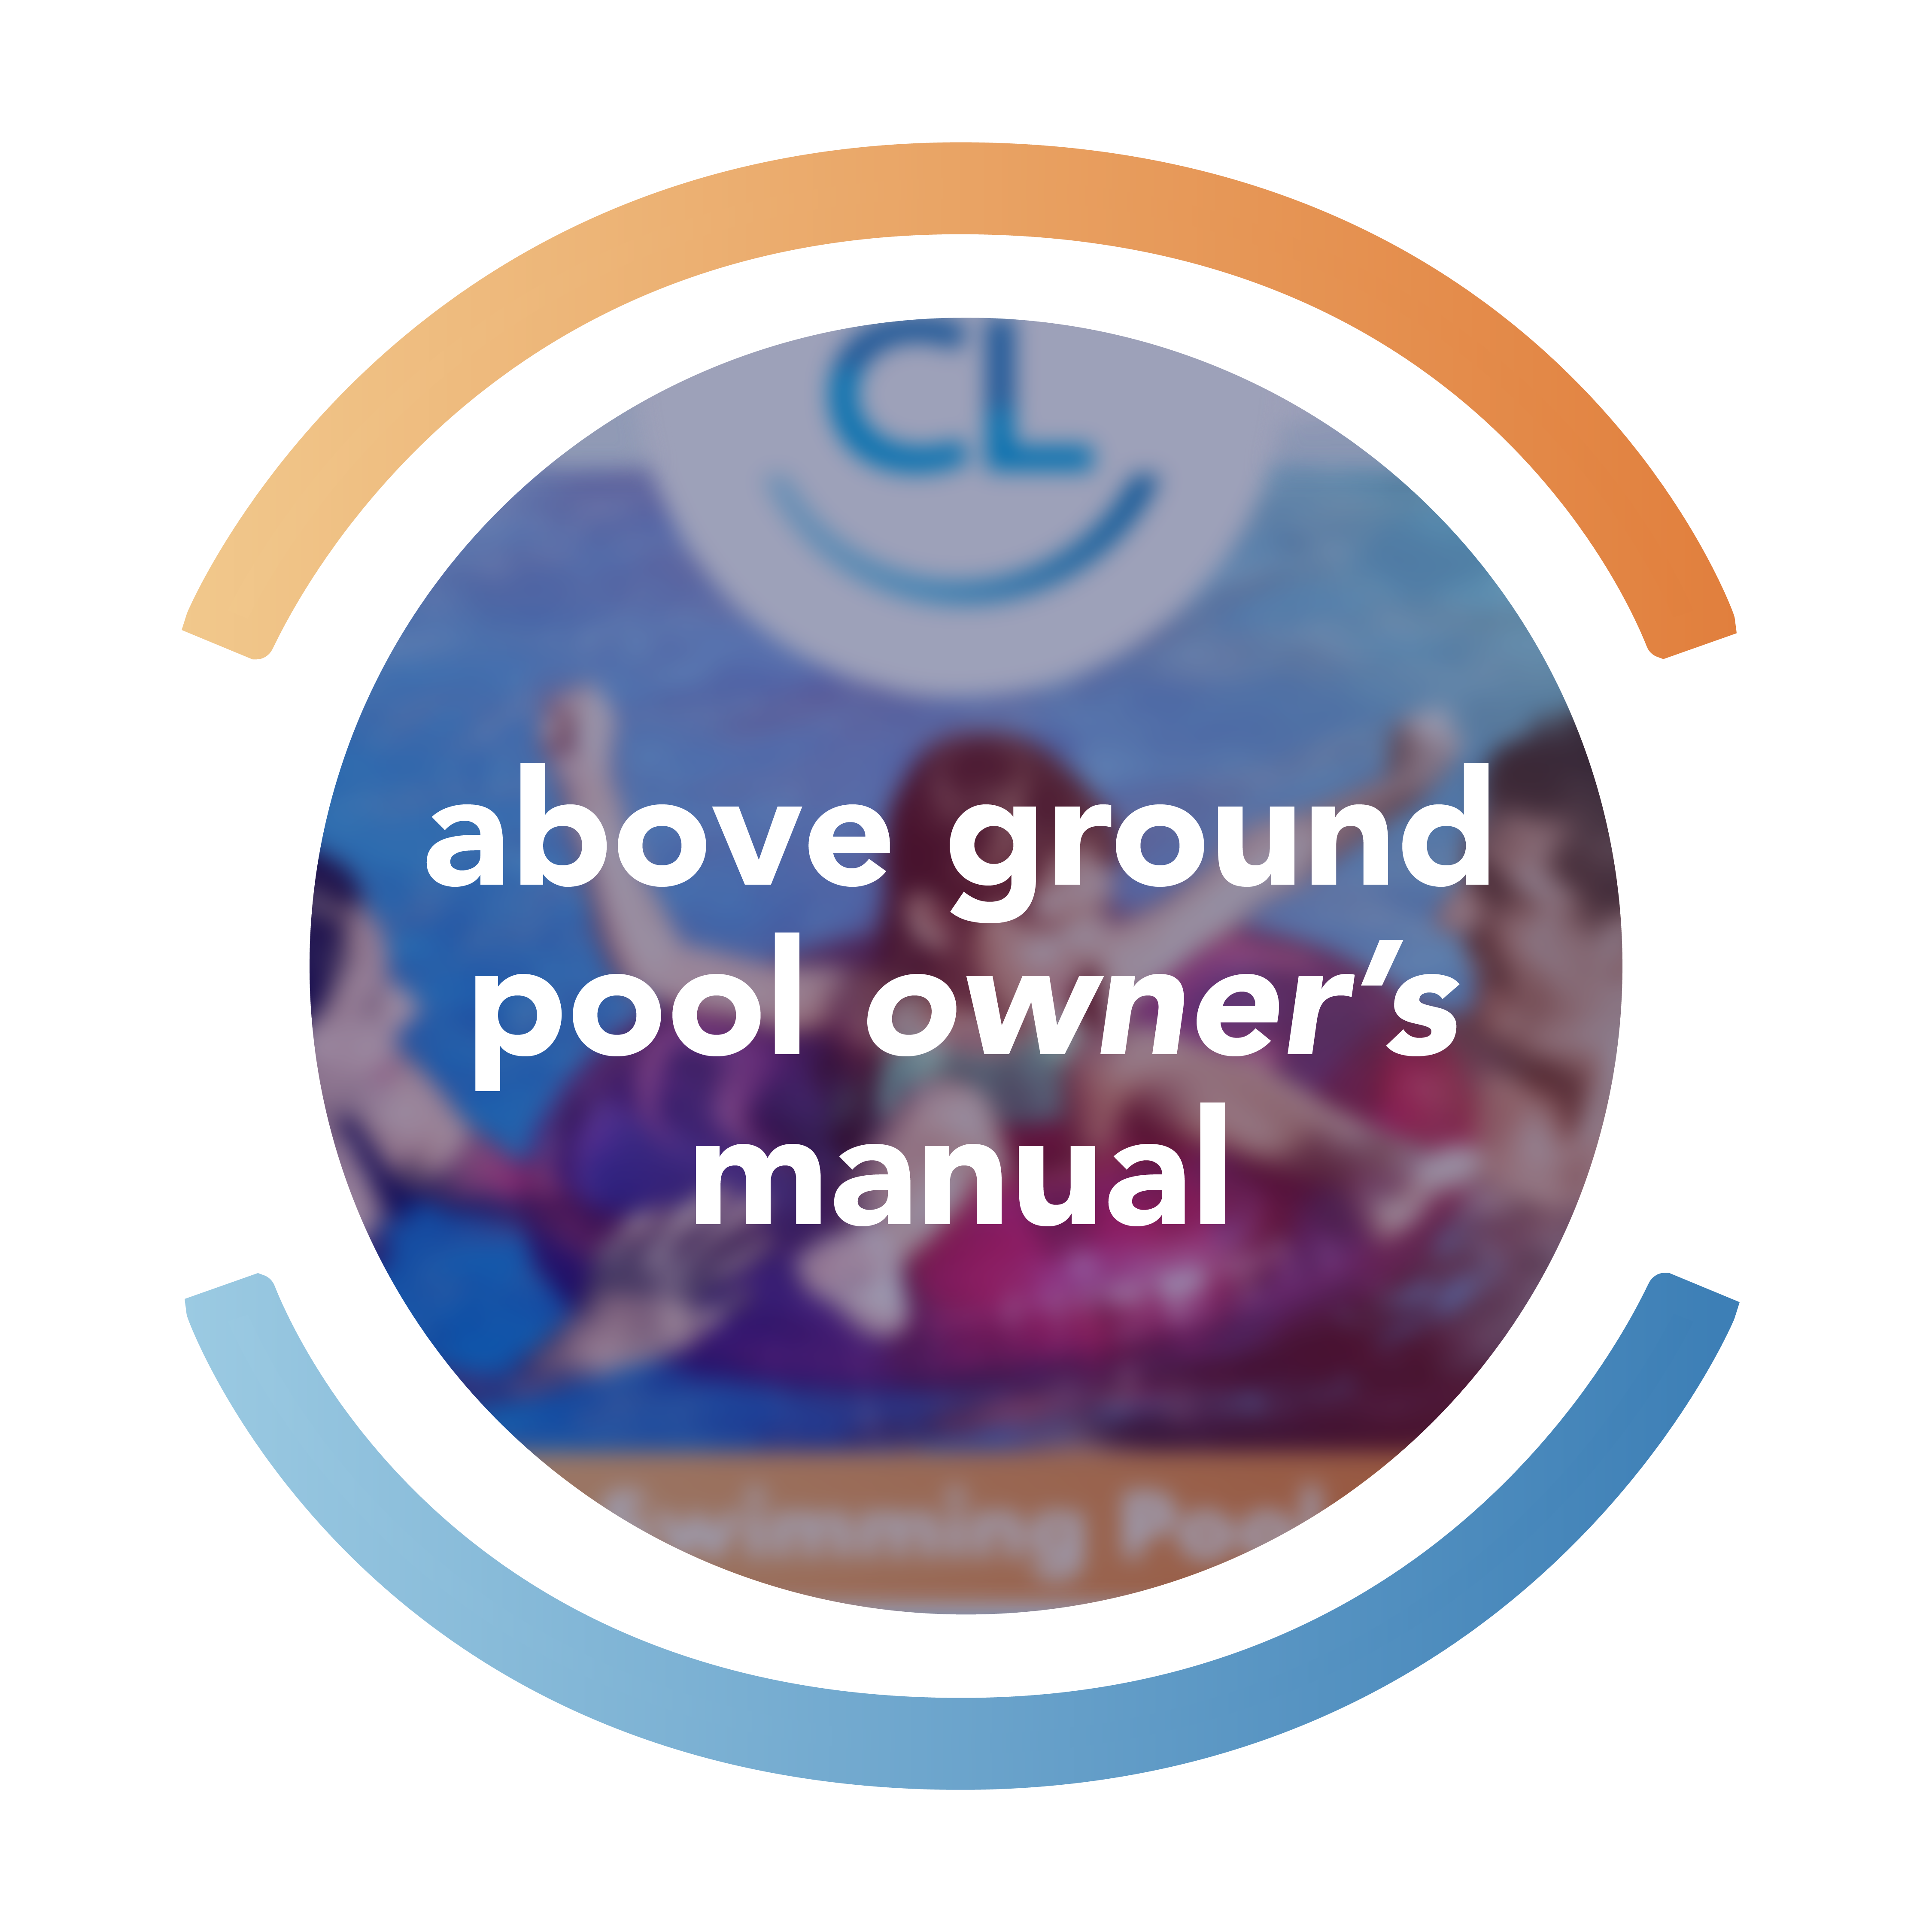 Above Ground Pool Owner's Manual